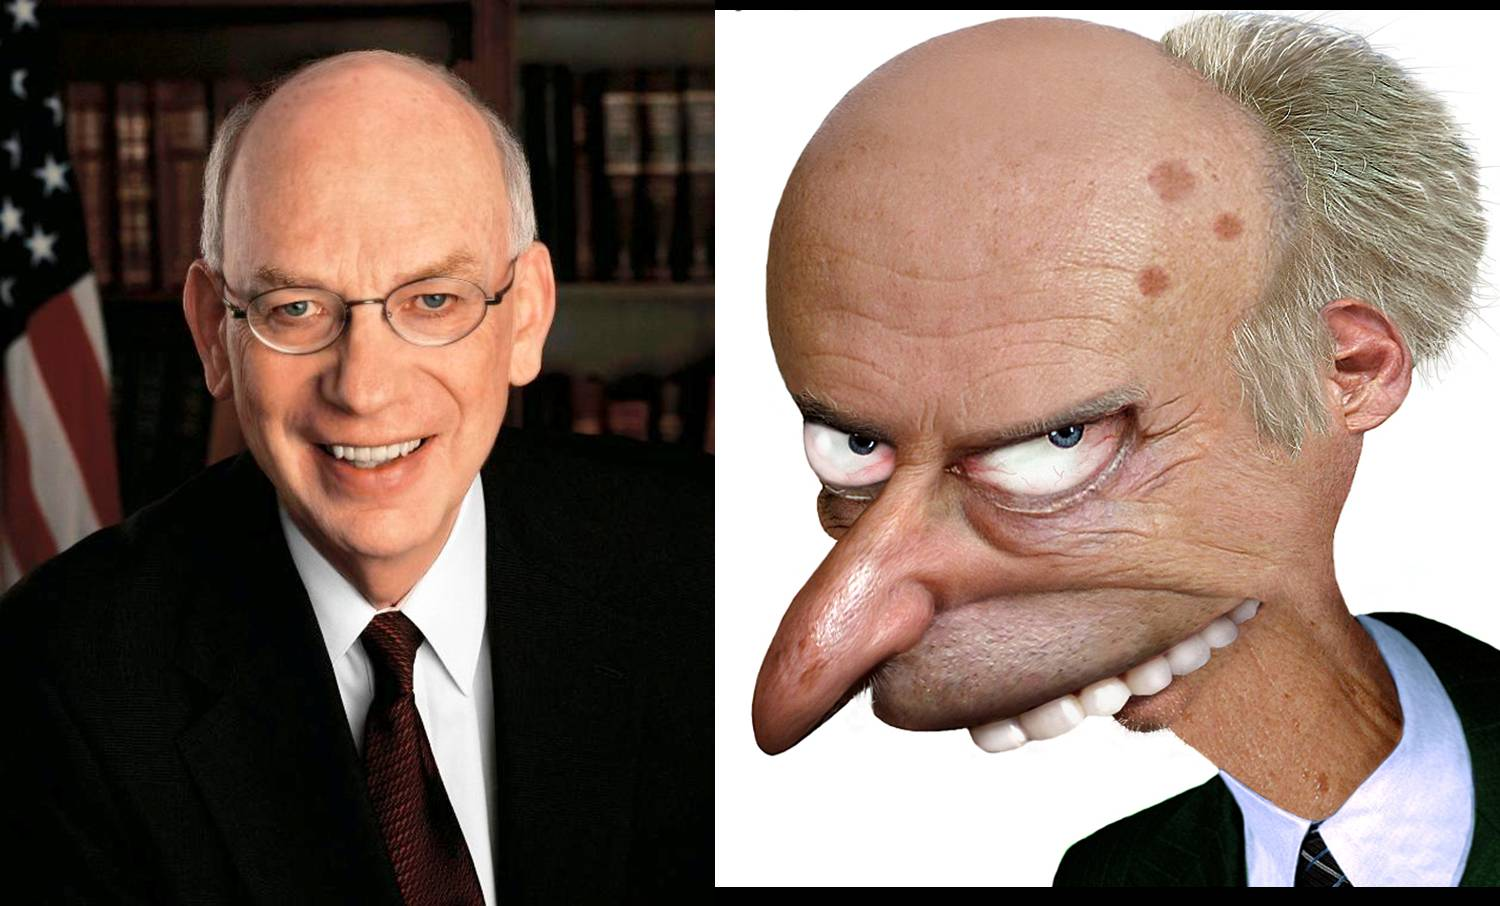 Sen. Bennett (R- UT) and Fictional Supervillain / Nuclear Power enthusiast C. Montgomery Burns